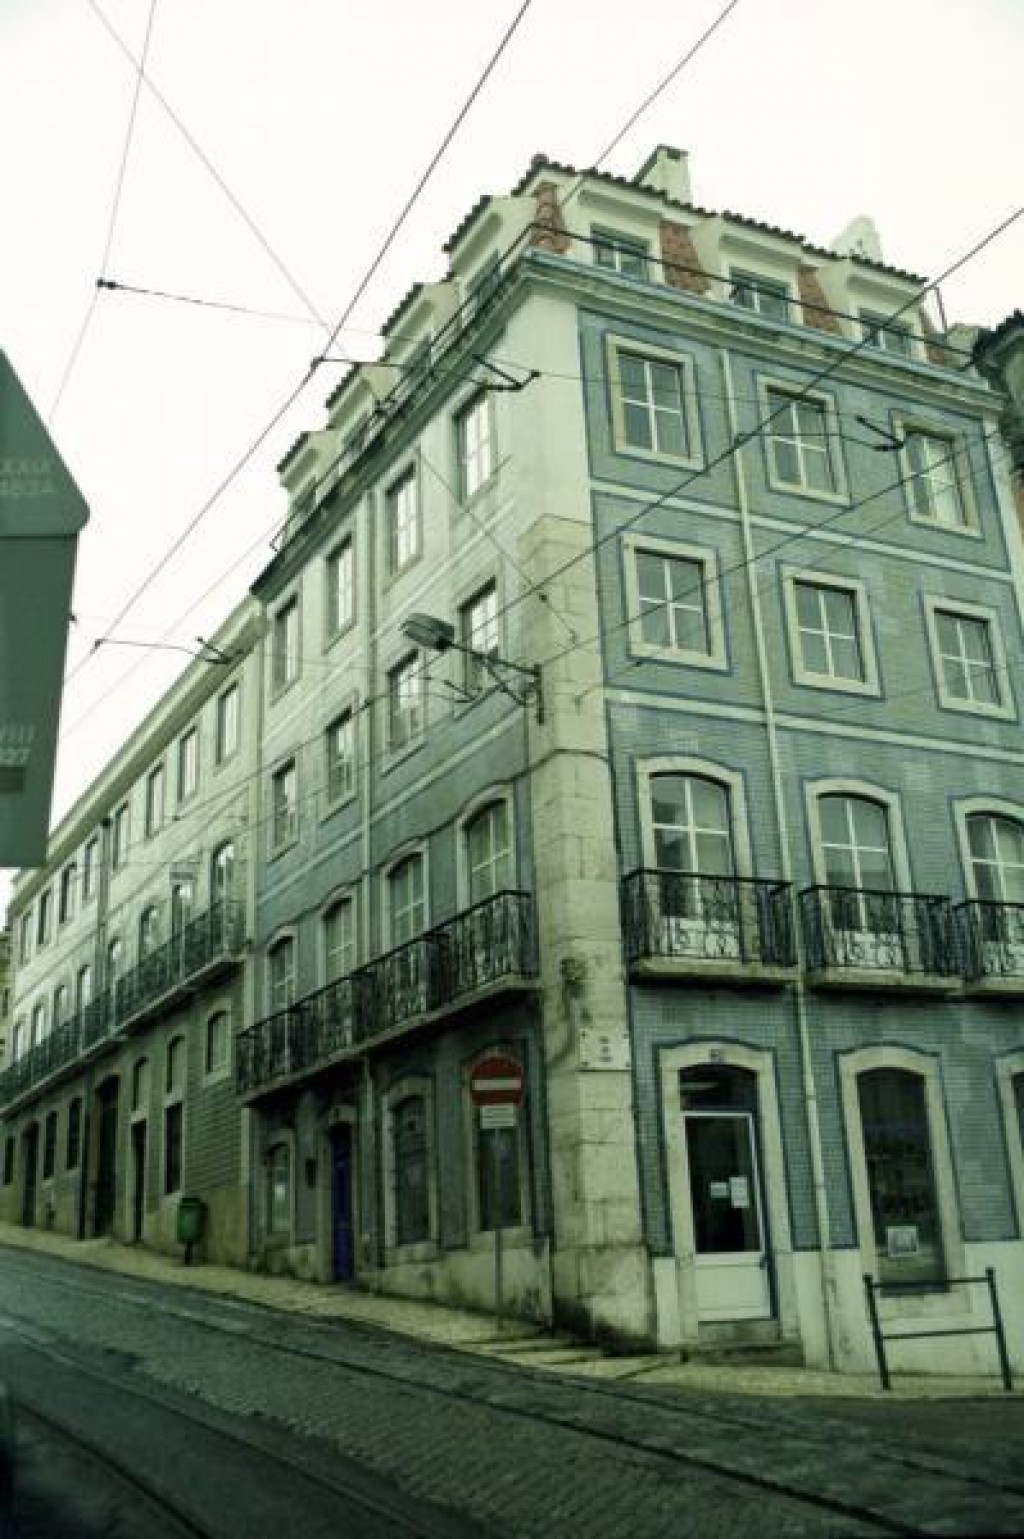 Notice that the building is covered in some of Portugal's famous tiles.